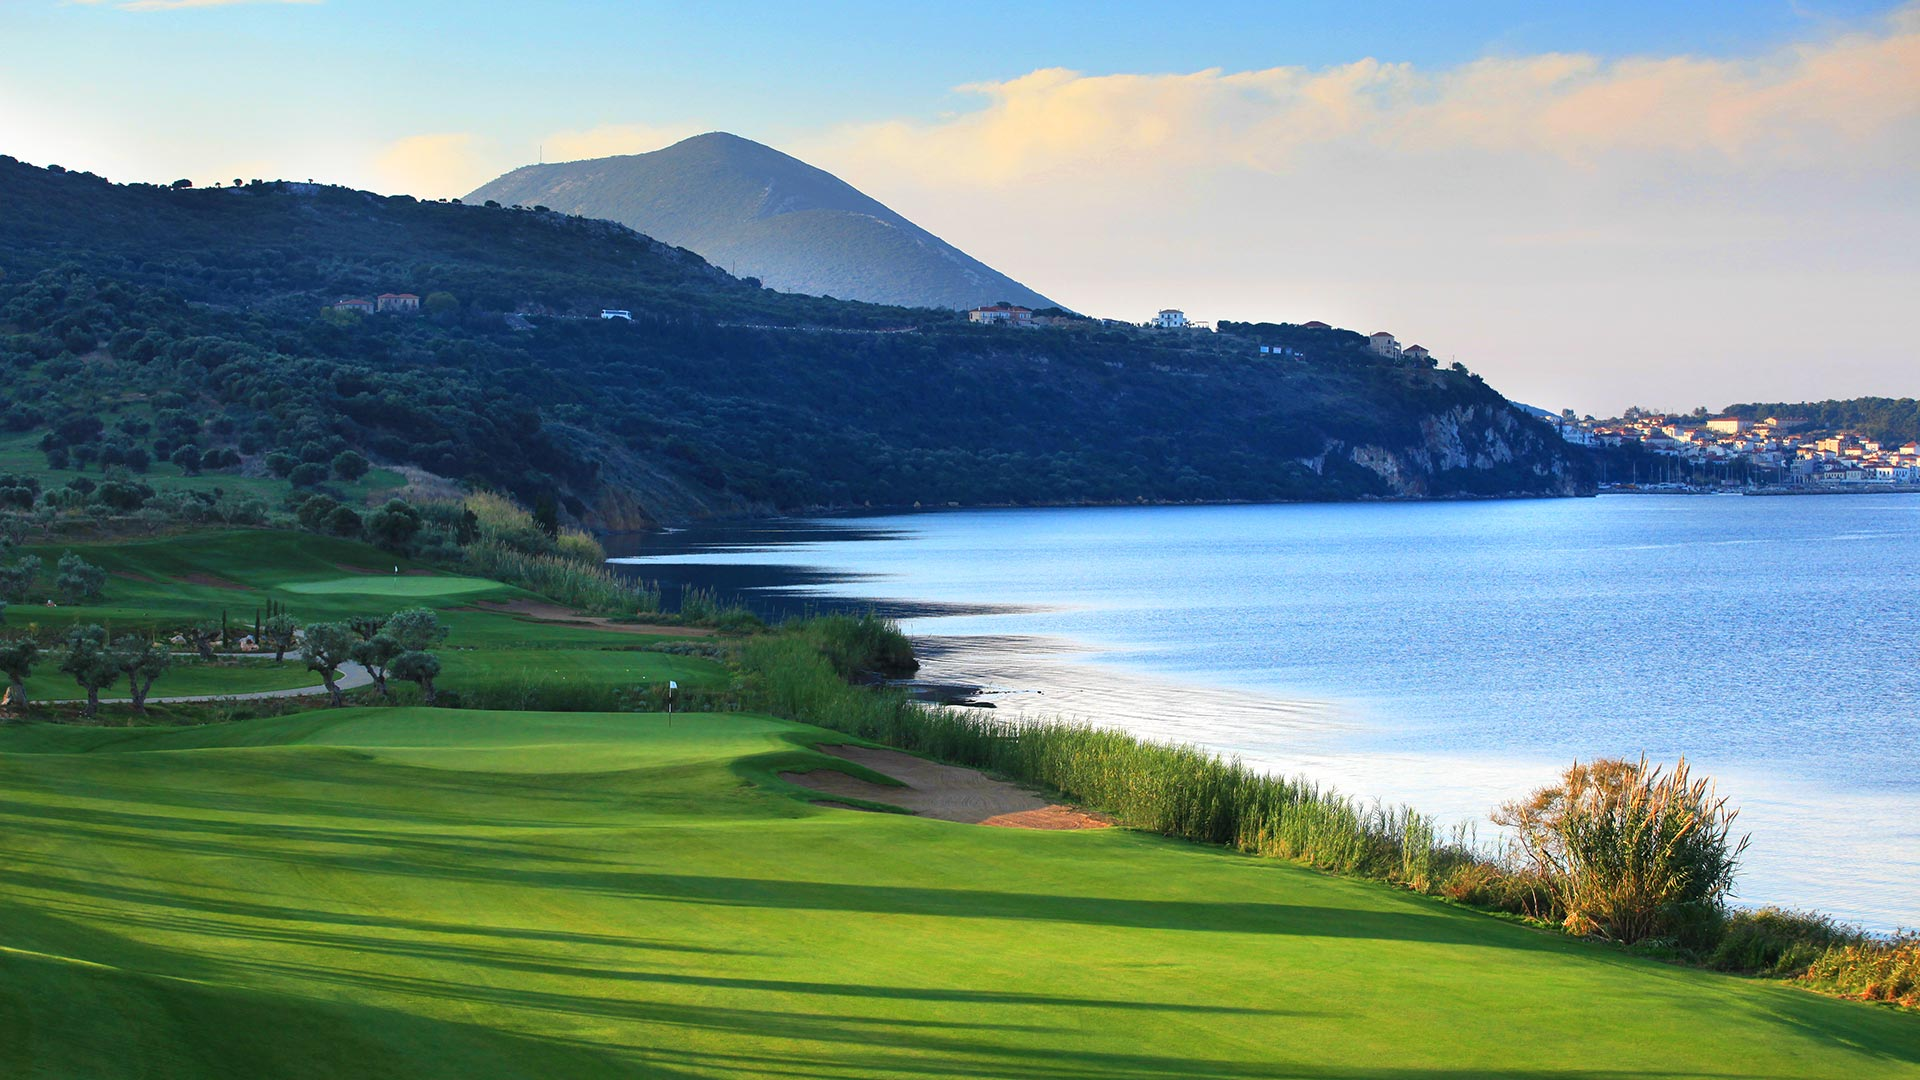 wold class golf course greece bay course costa navarino